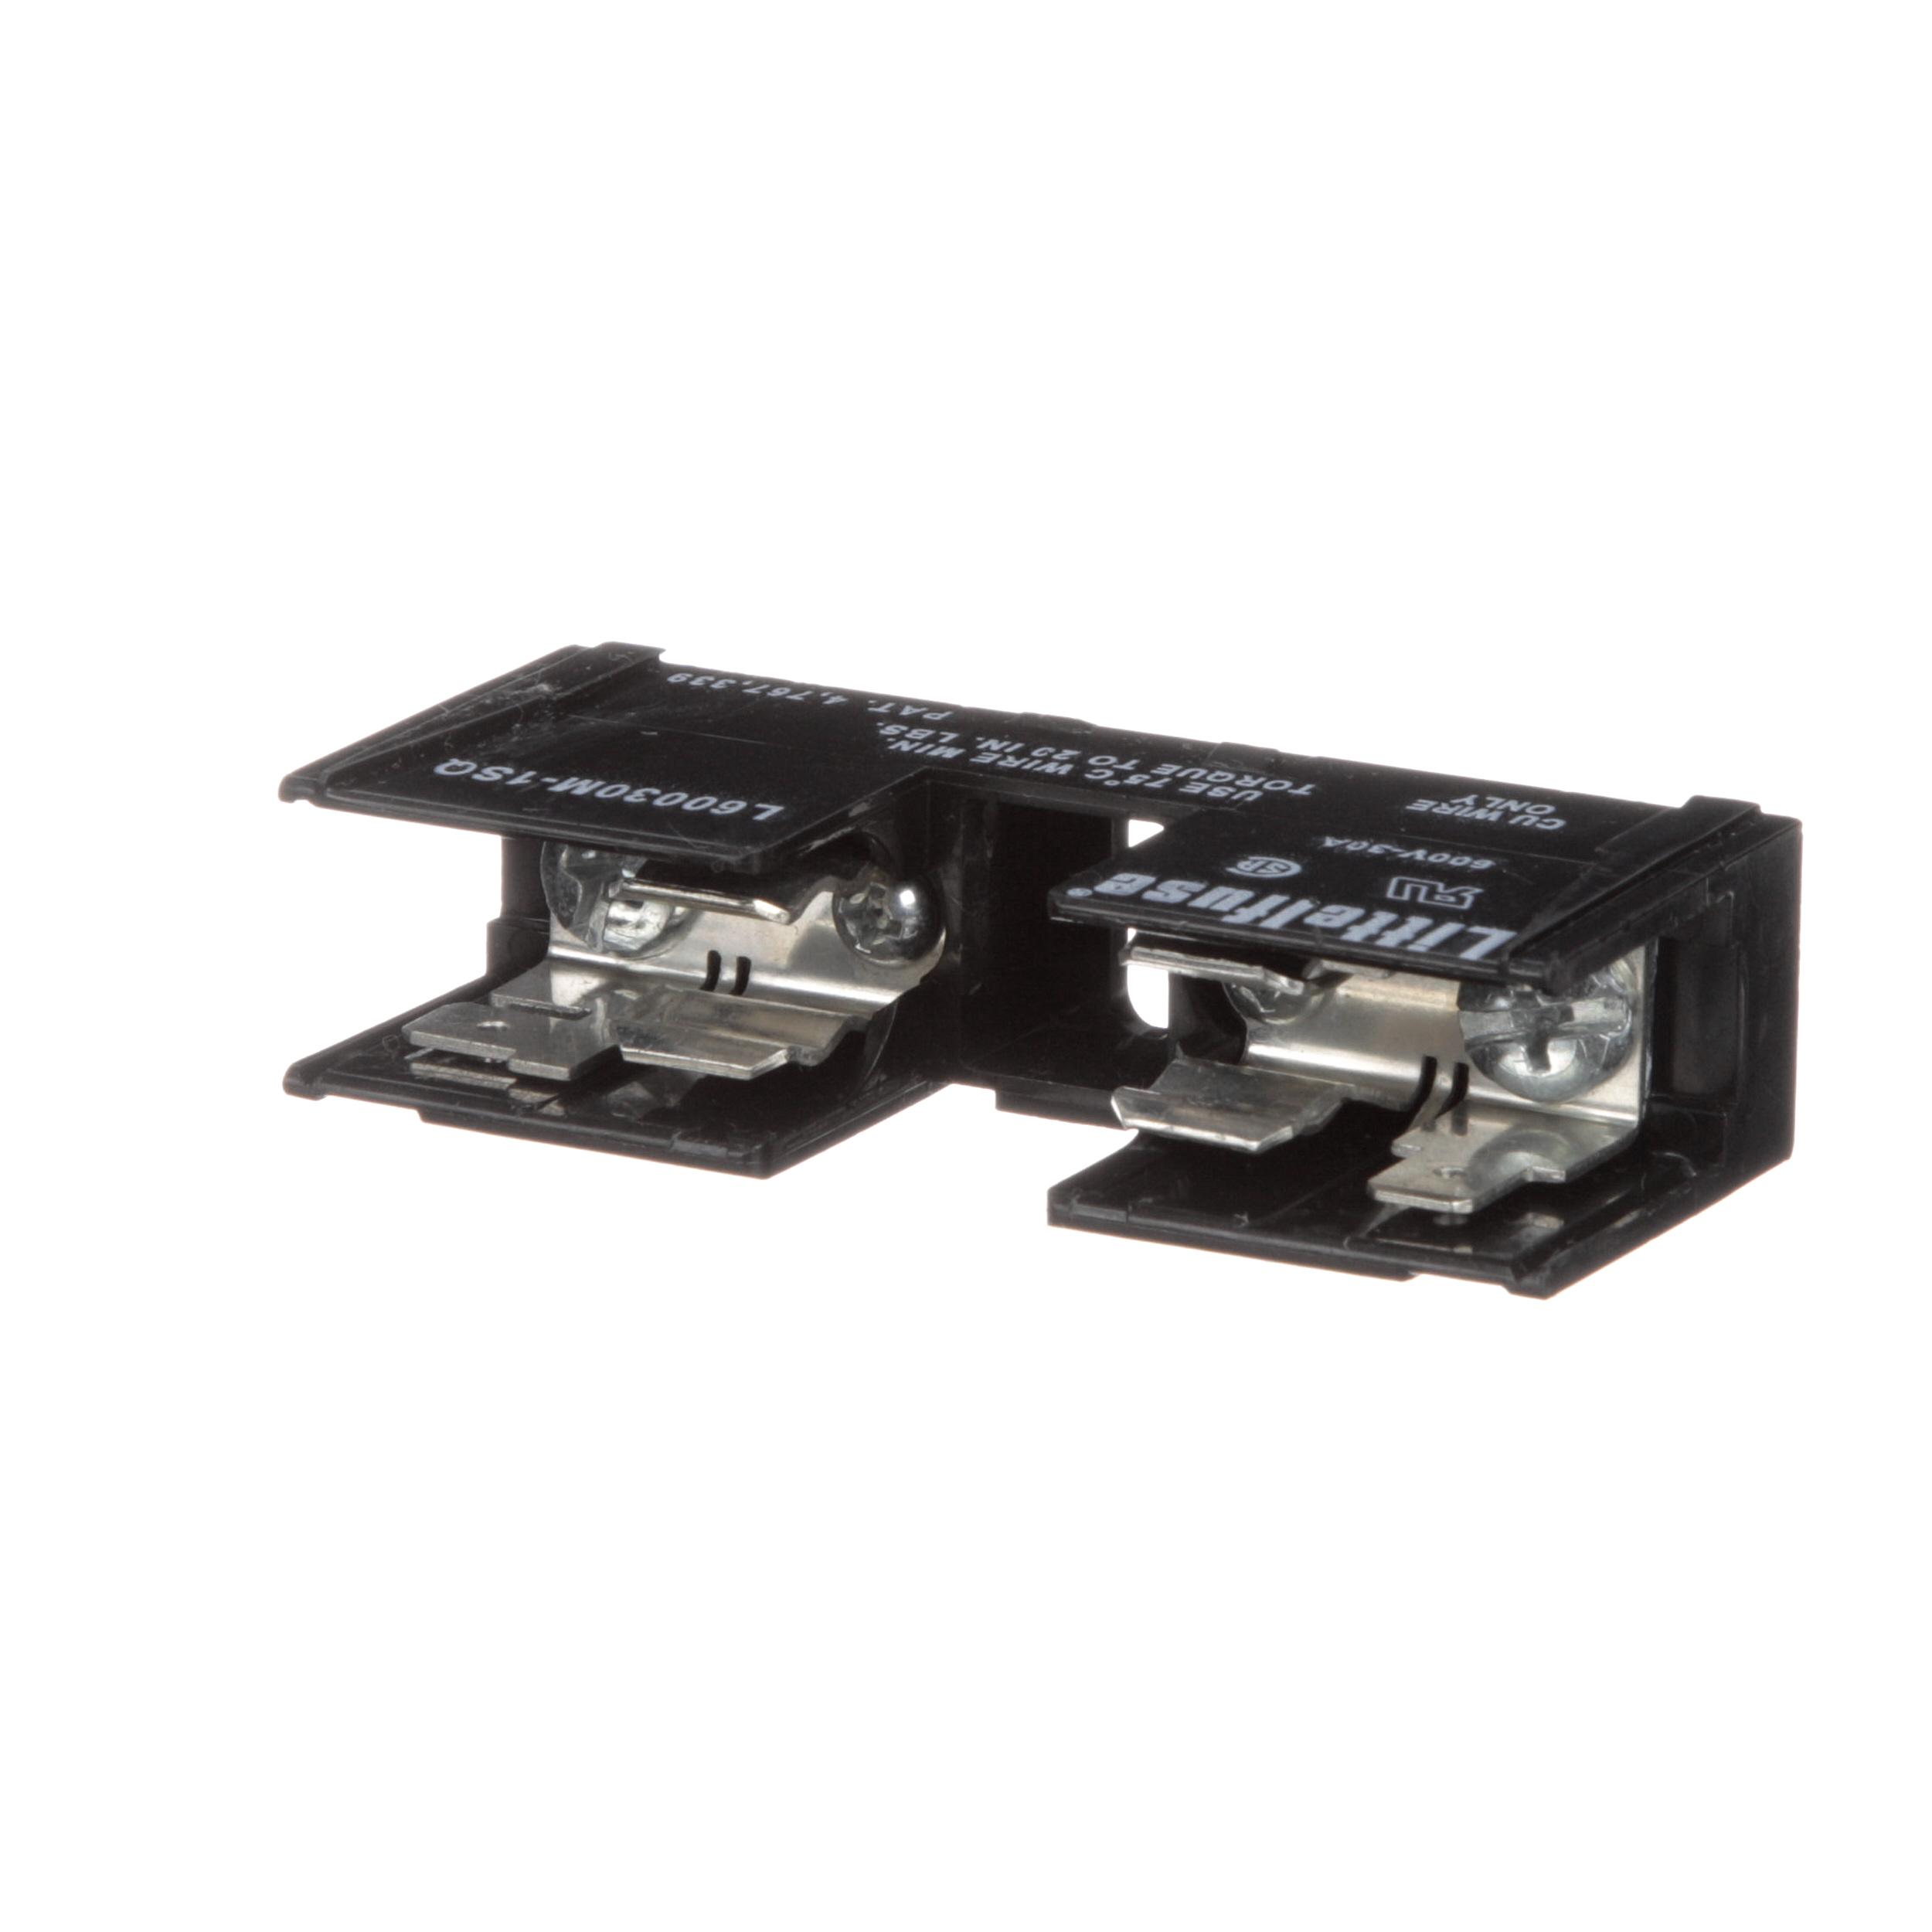 MERRY CHEF 30A FUSE HOLDER